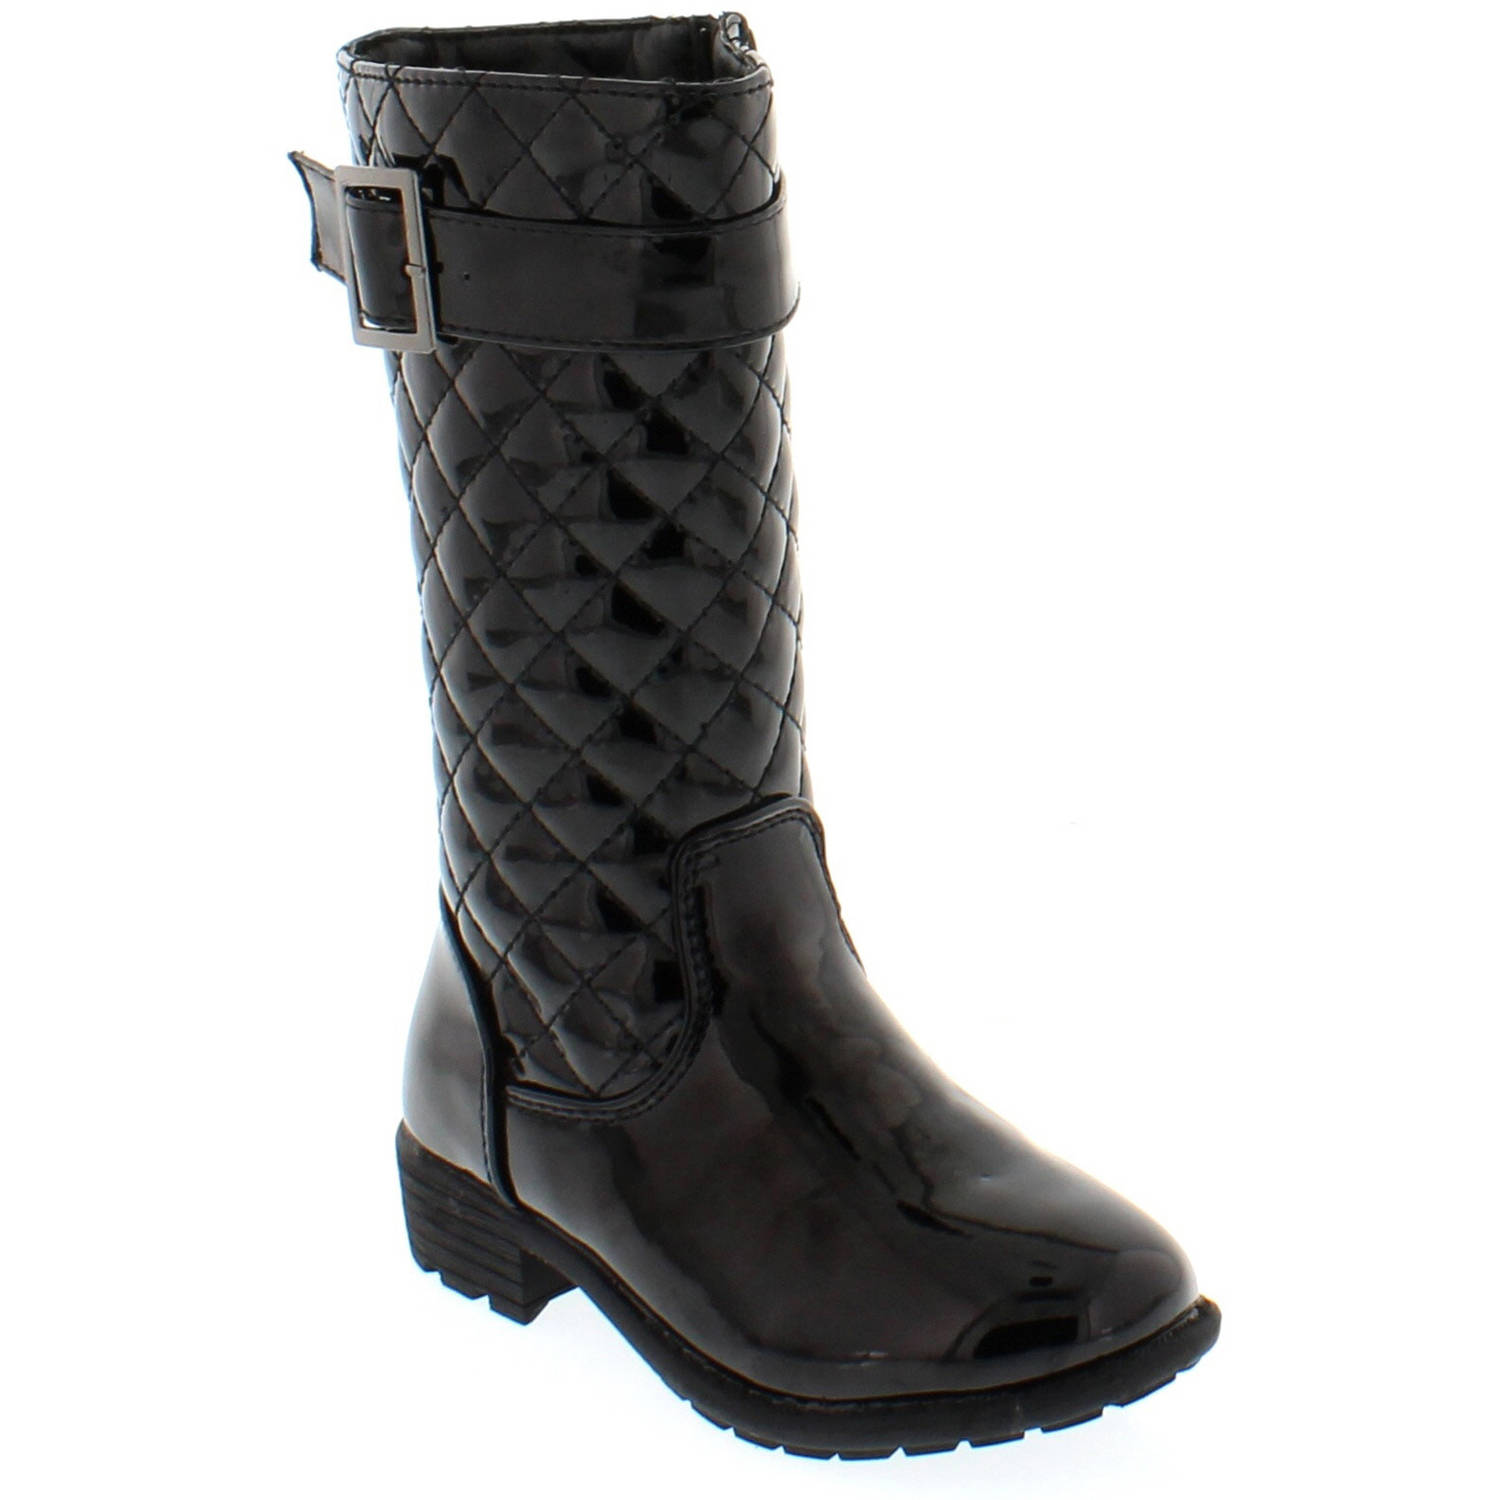 shoes of soul buckle leather boots walmart